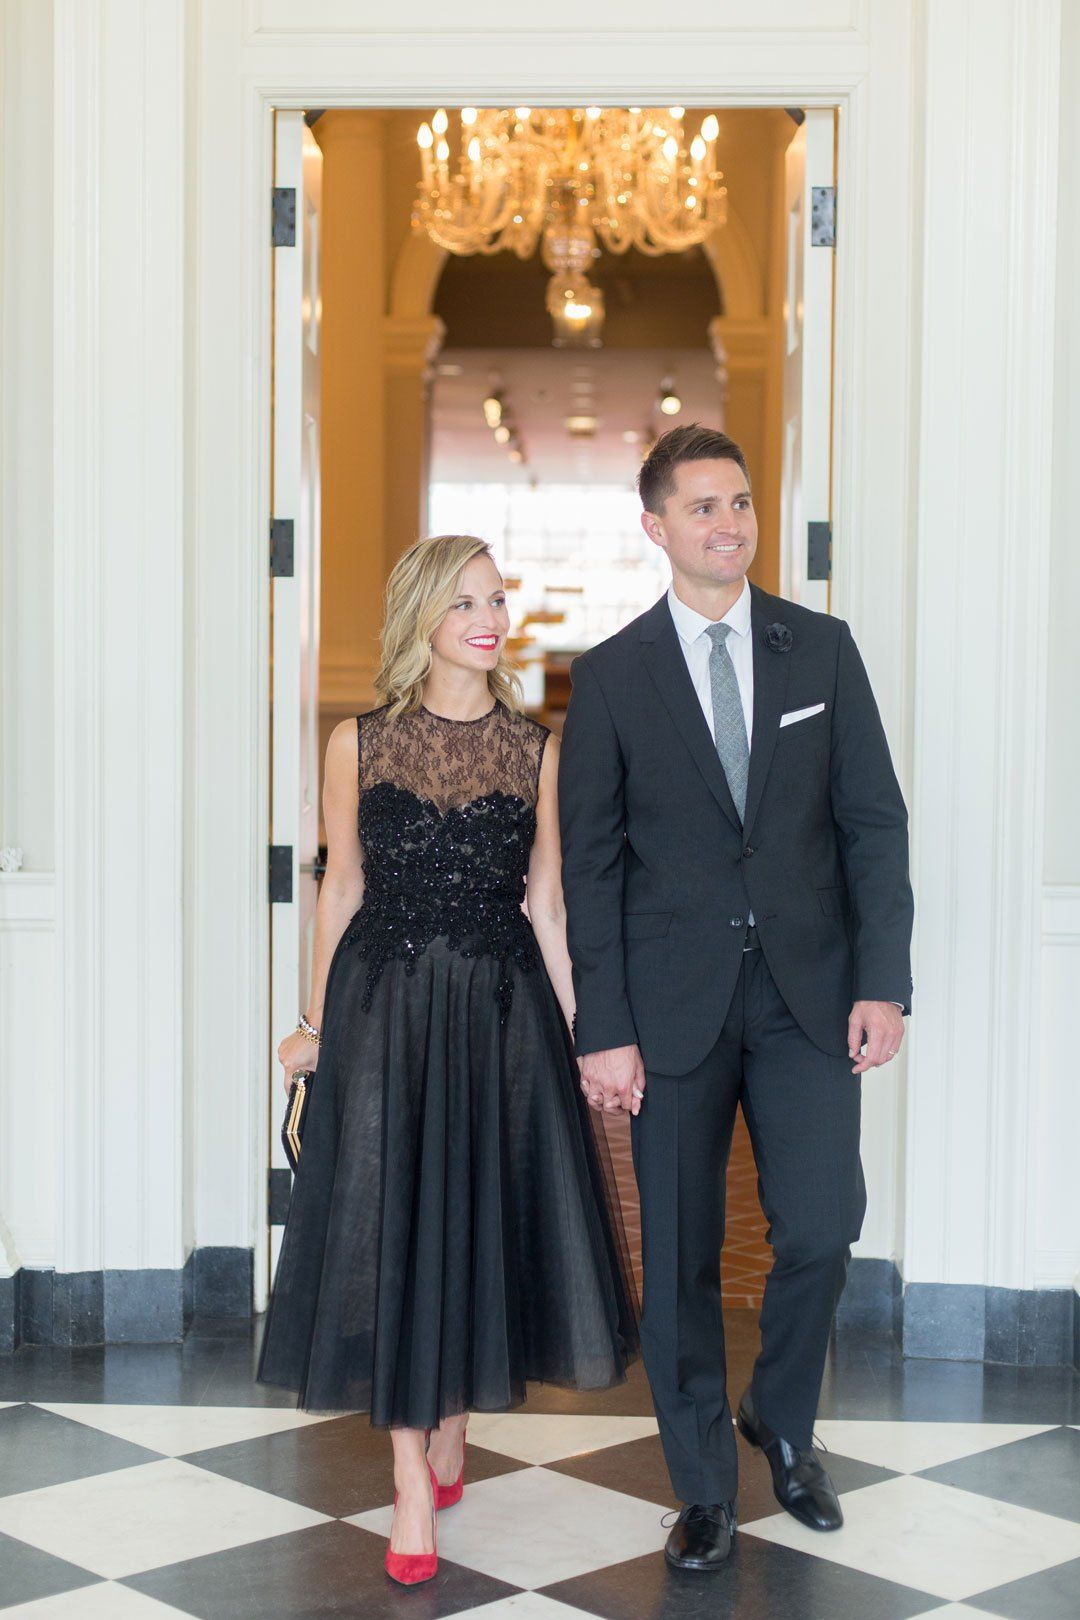 What To Wear To A Black Tie Optional Wedding Masquerade